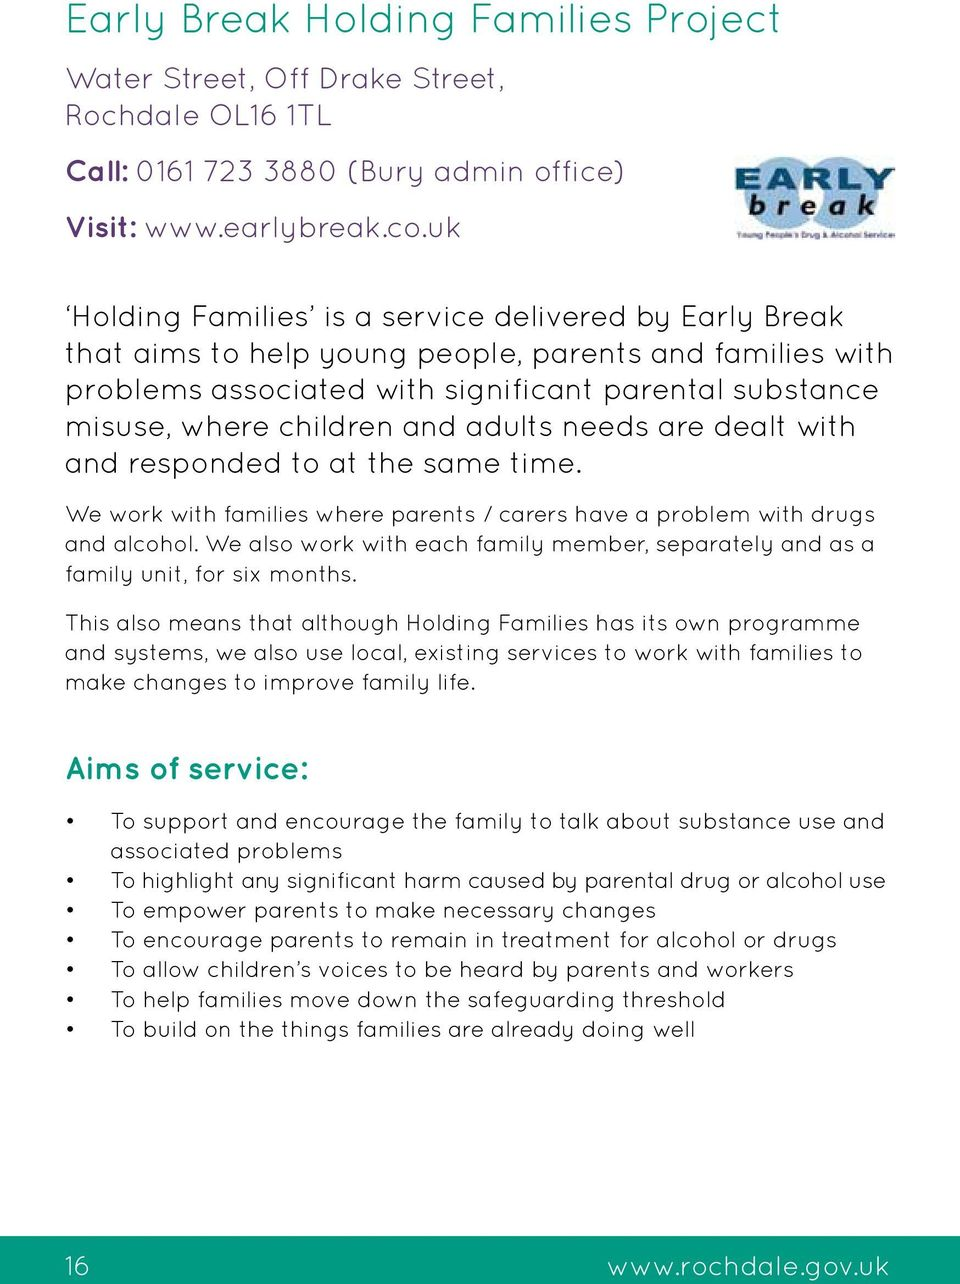 adults needs are dealt with and responded to at the same time. We work with families where parents / carers have a problem with drugs and alcohol.